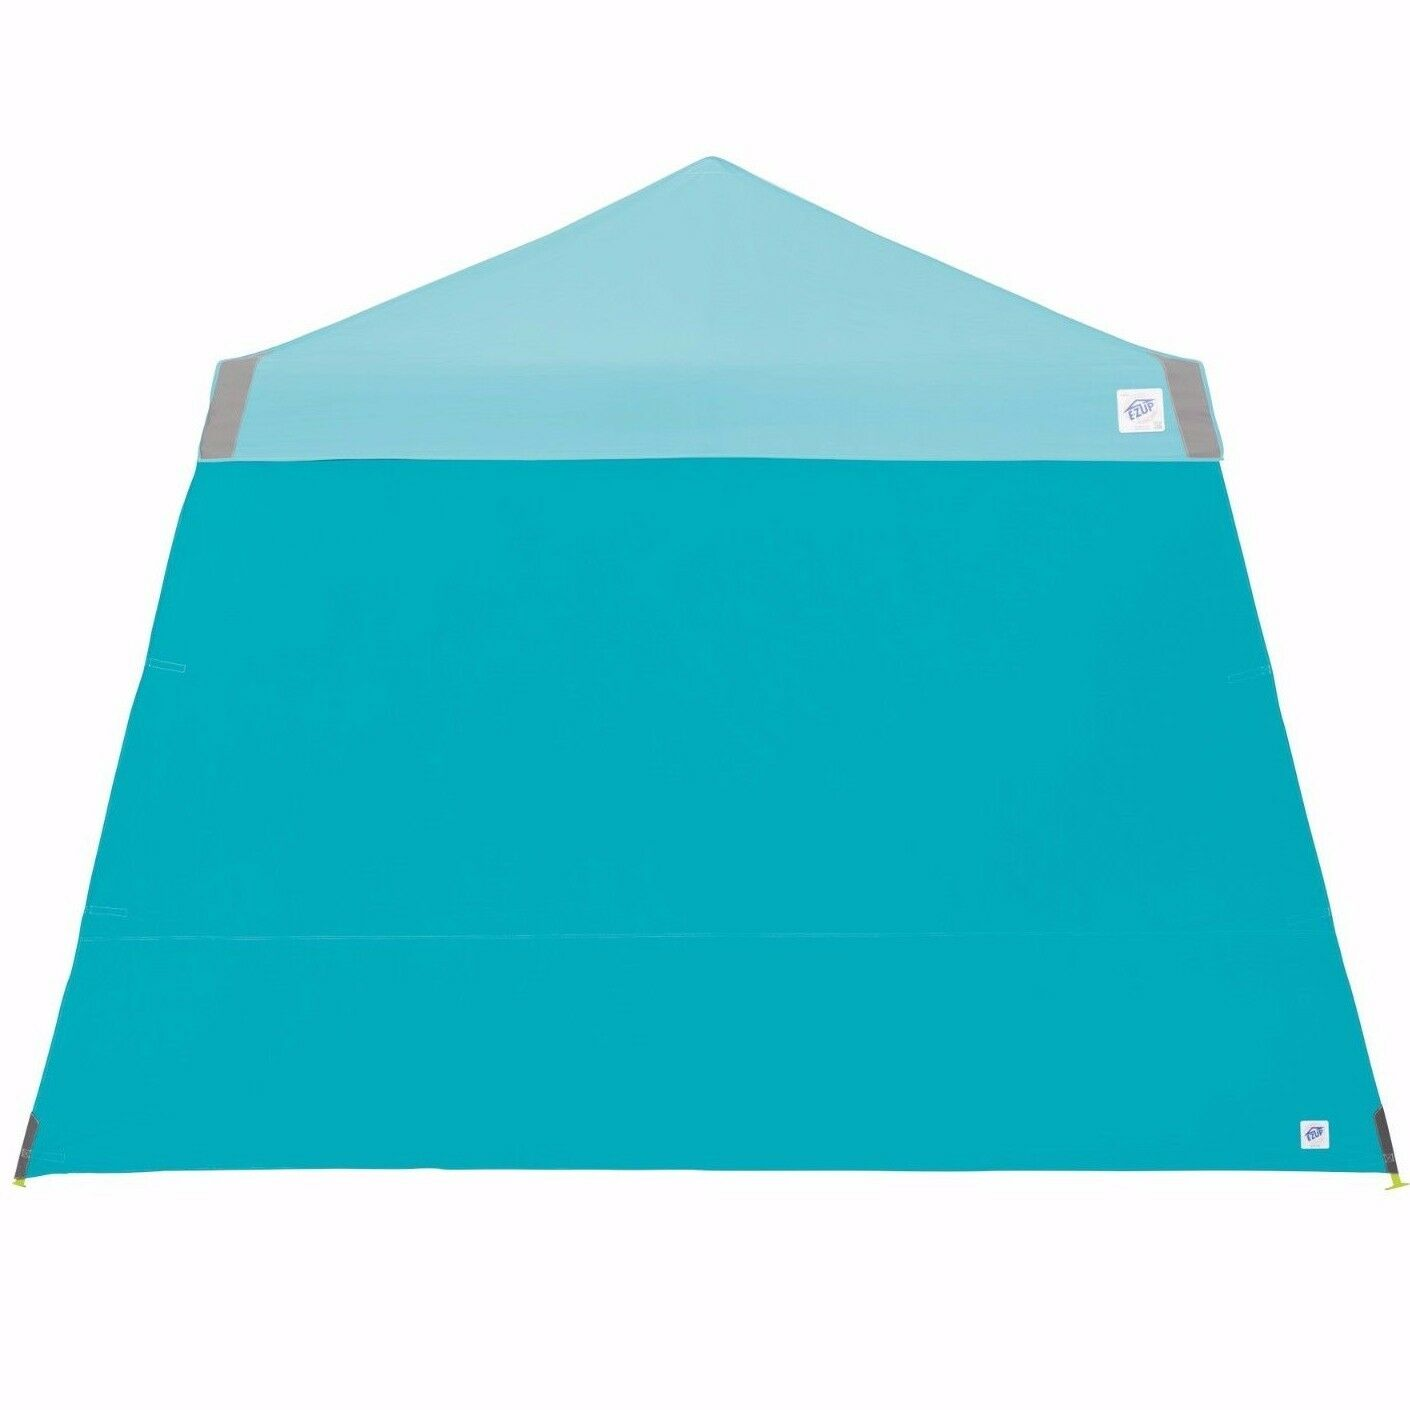 E-Z UP Recreational Sidewall - Fits Angle Leg 12' Instant Shelter Splash